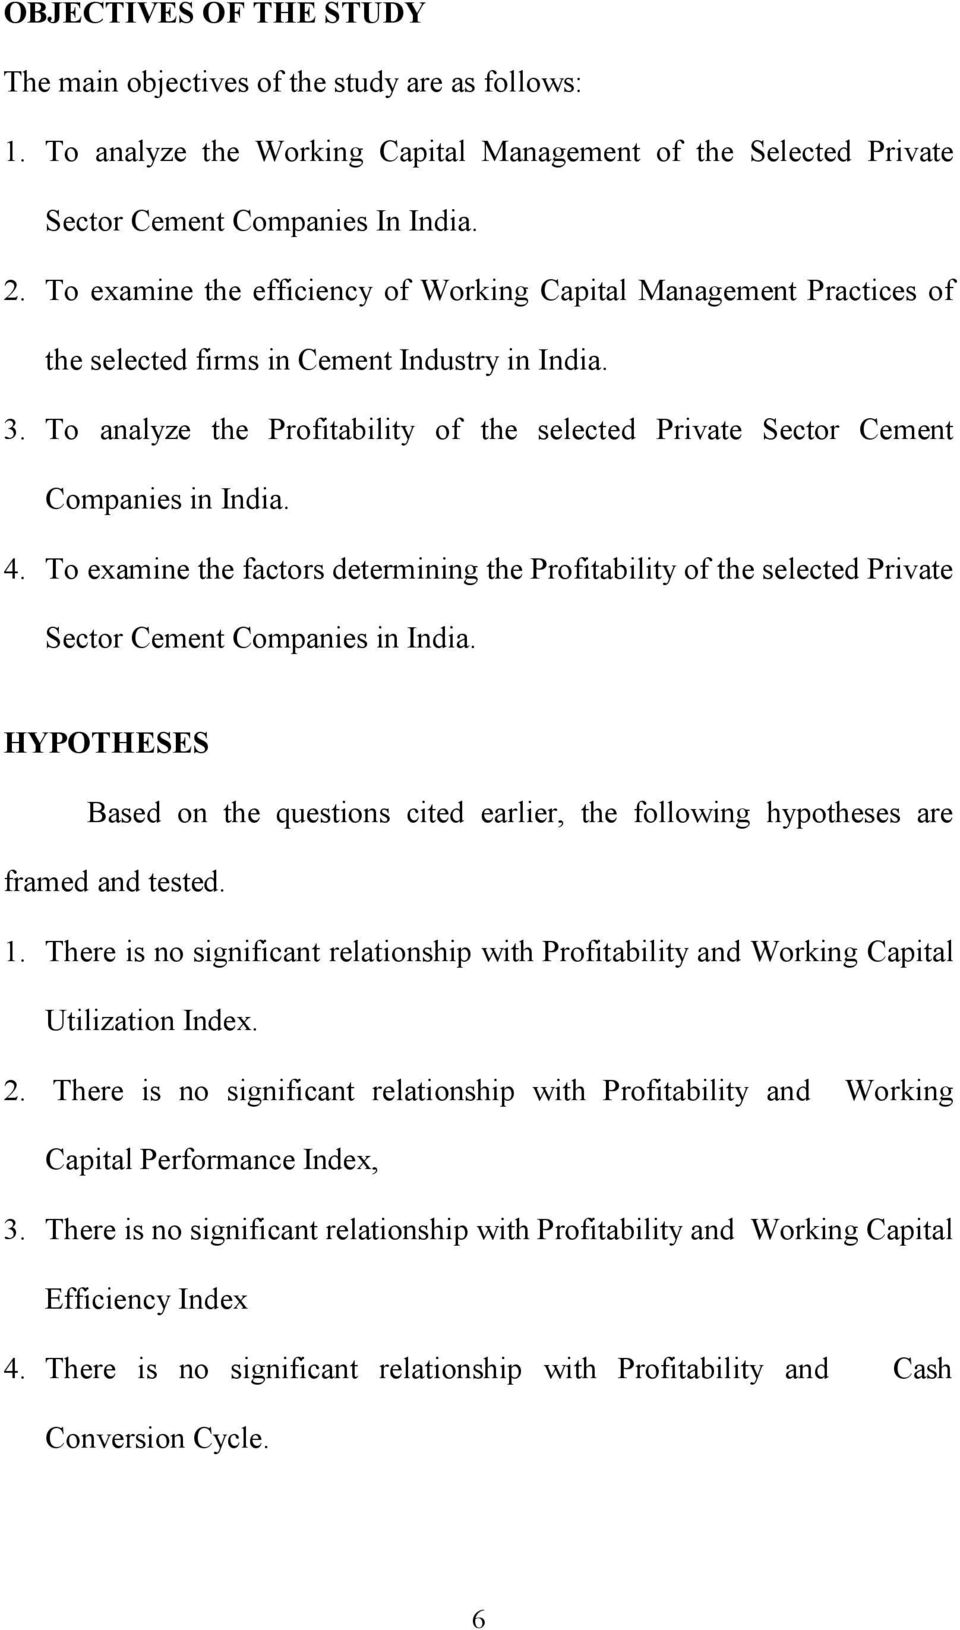 To analyze the Profitability of the selected Private Sector Cement Companies in India. 4. To examine the factors determining the Profitability of the selected Private Sector Cement Companies in India.